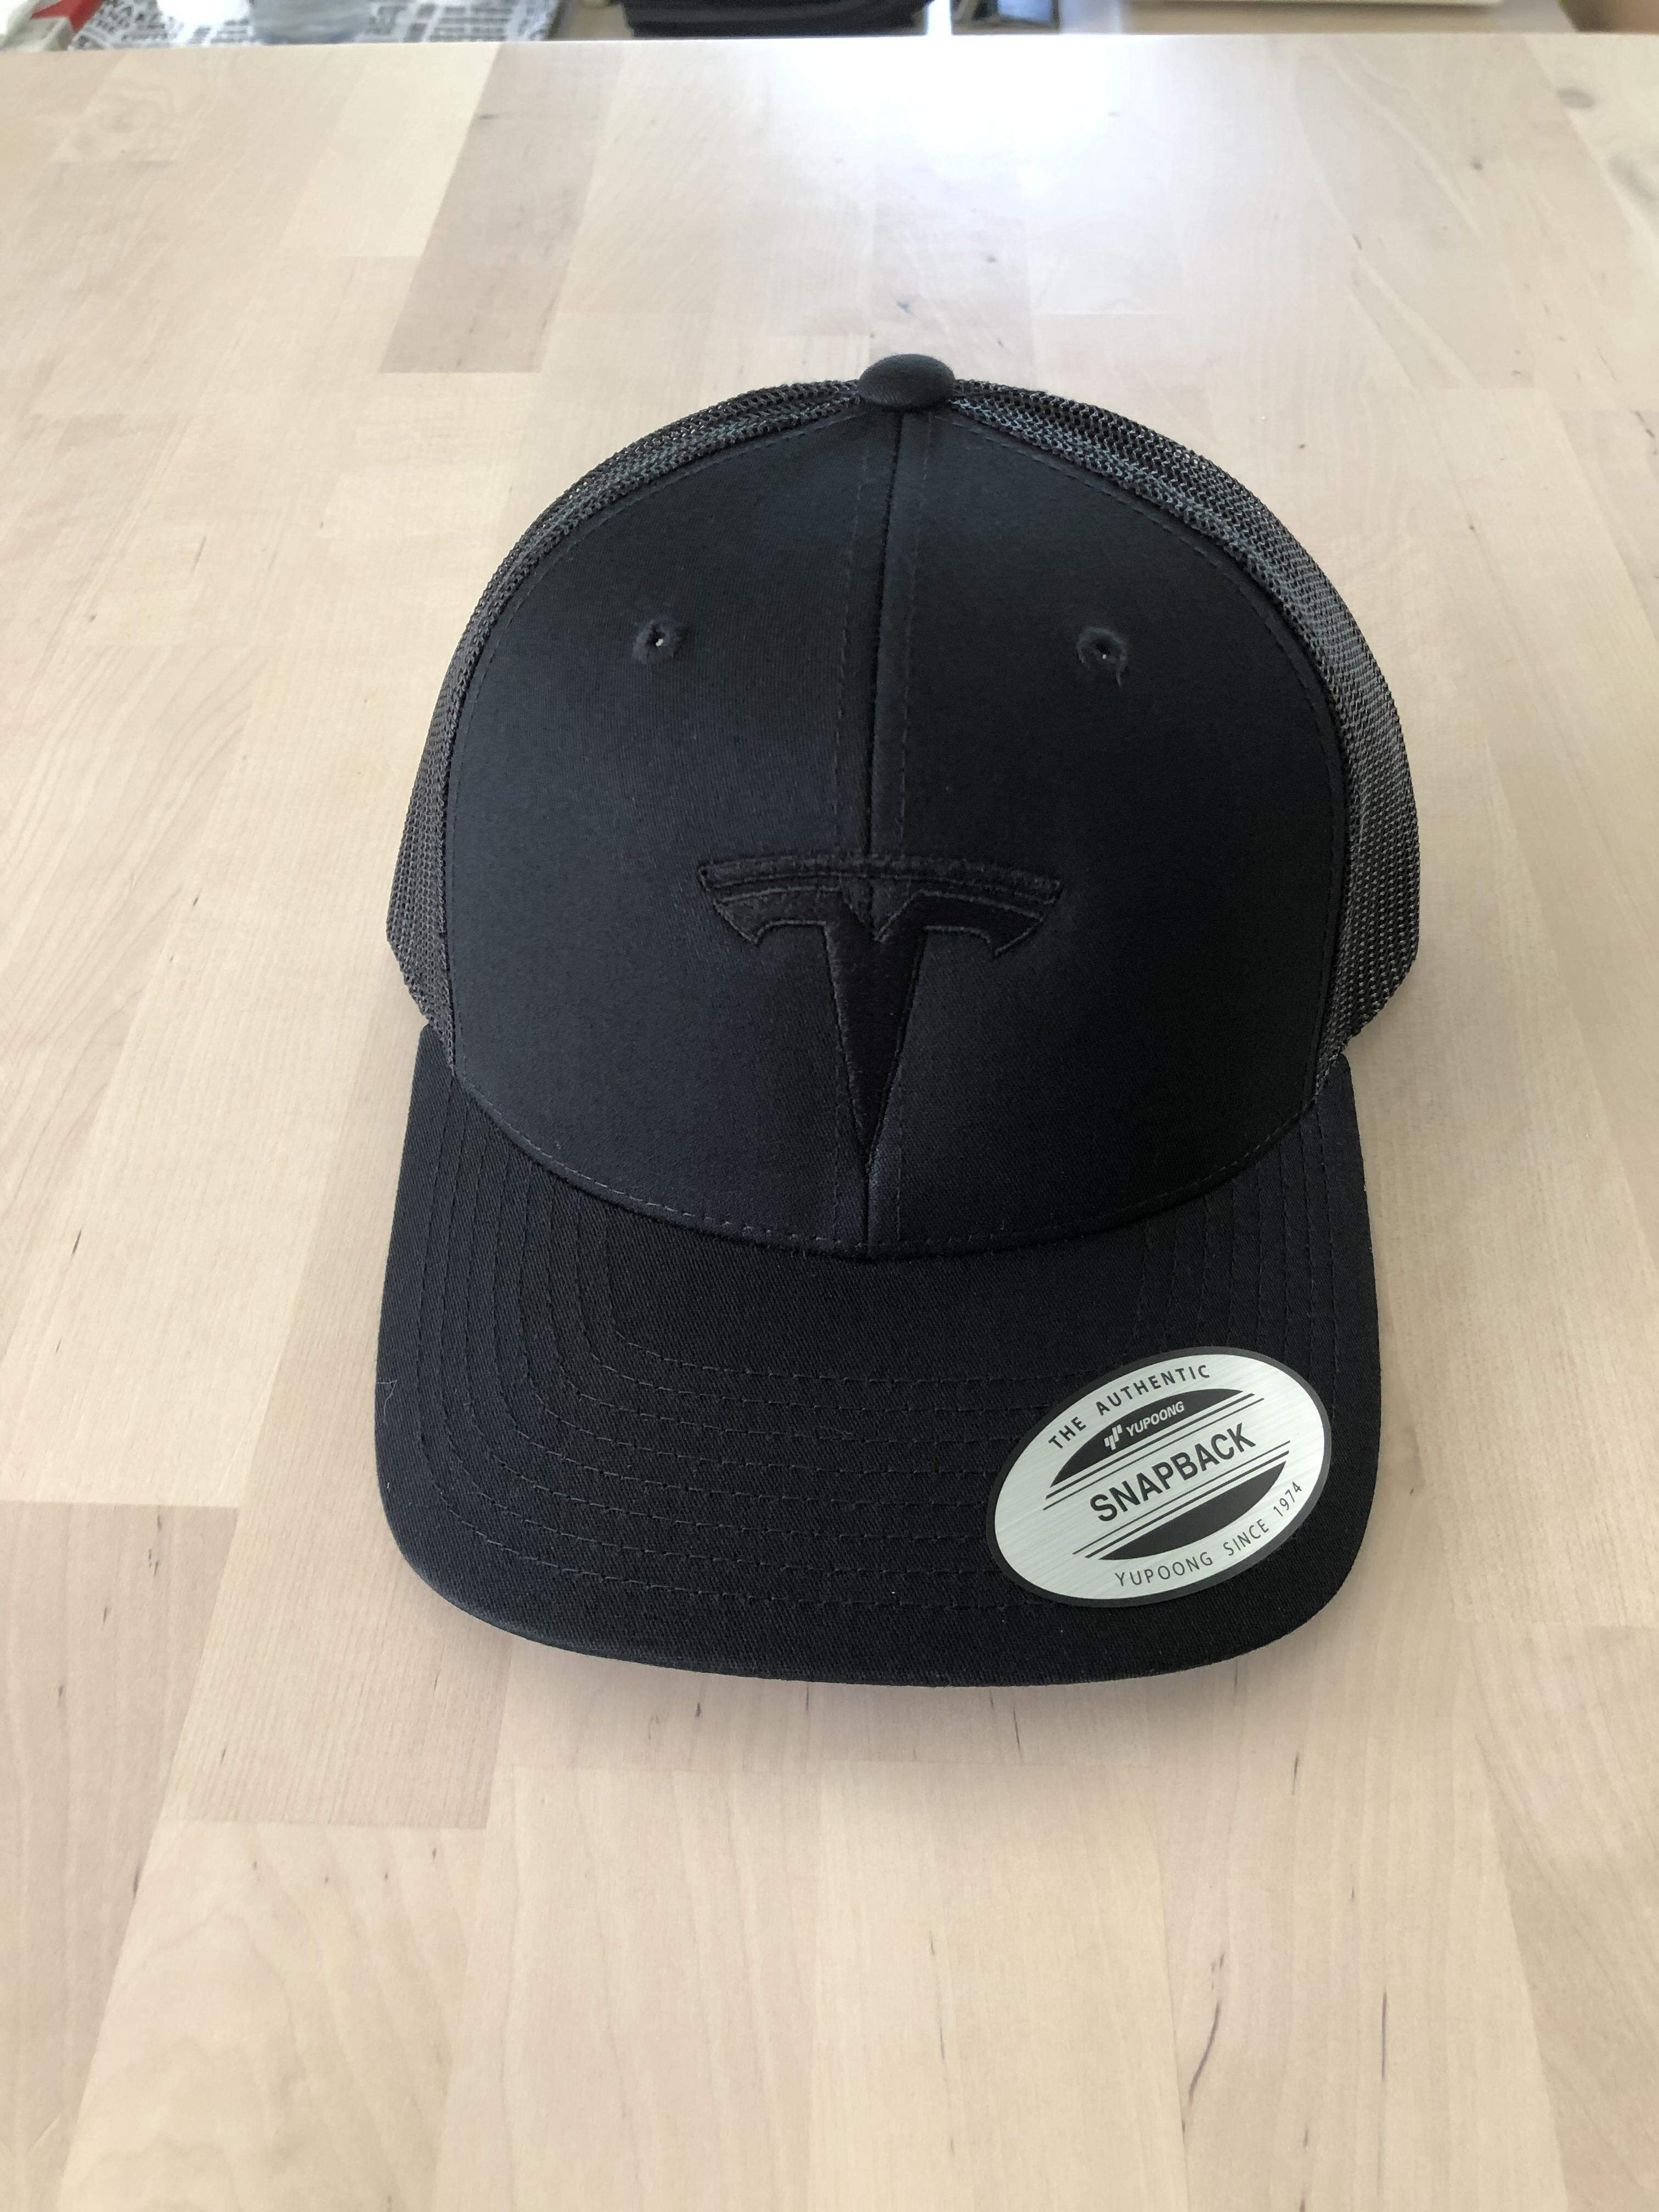 Cap CLASSIC Yupoong 6-Panel Retro Trucker Cap Black mit TESLA Stickerei